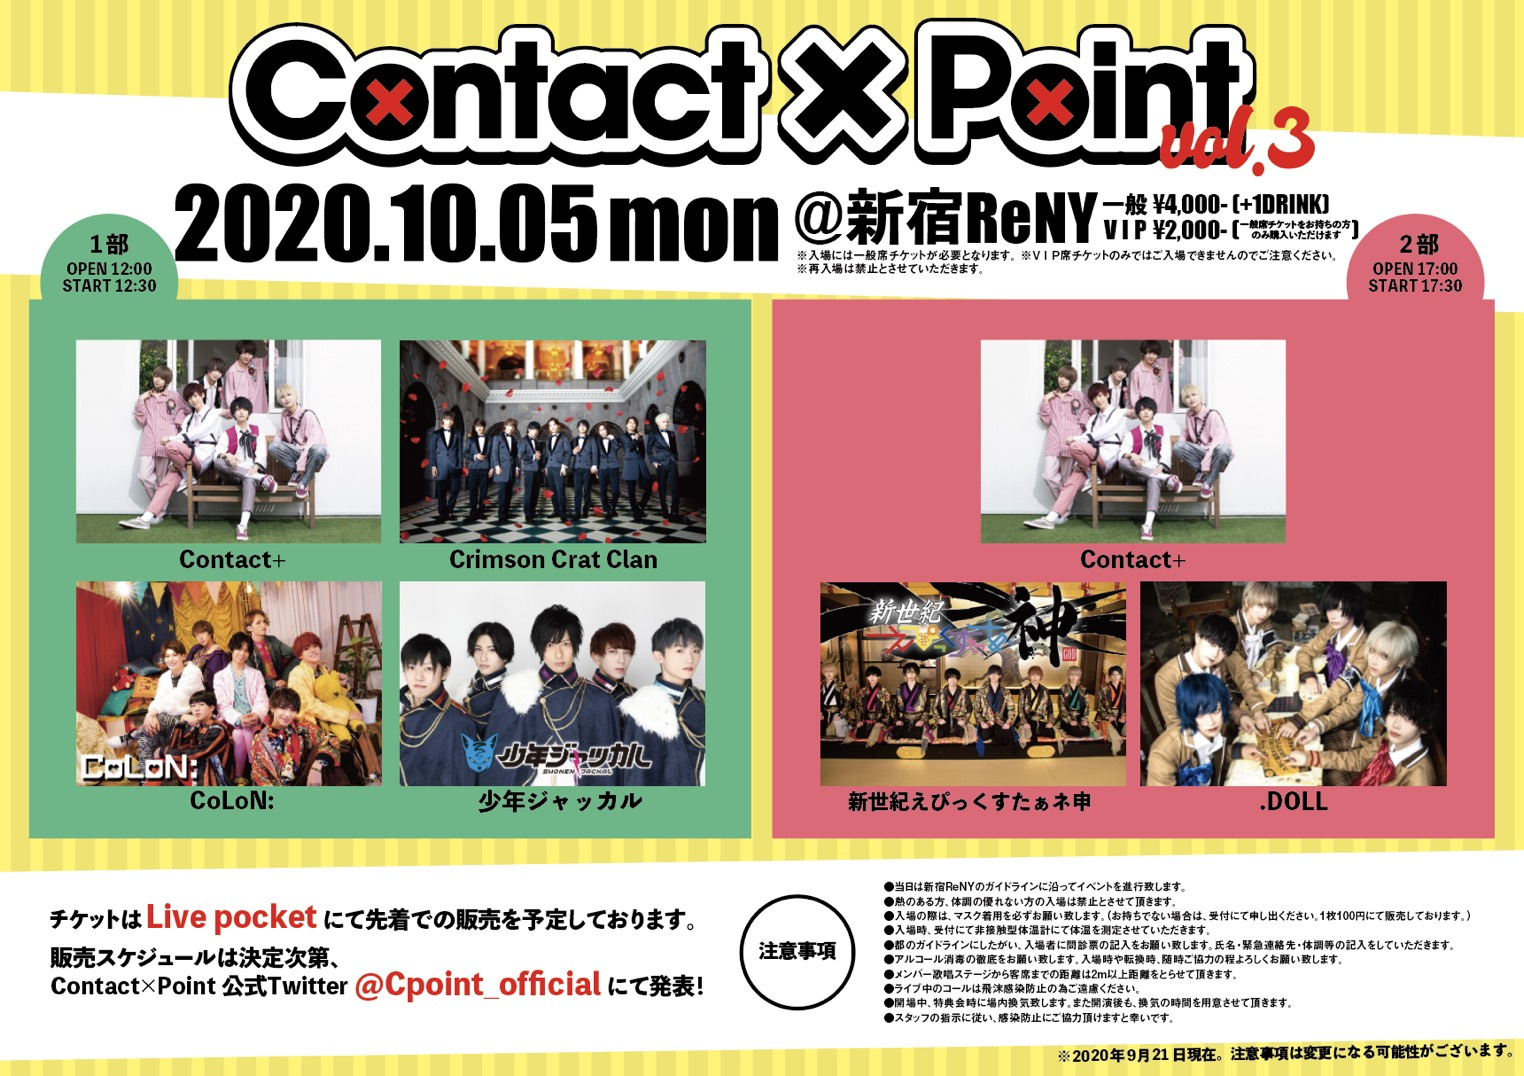 「Contact×Point Vol.3」一部【VIP席 Contact+】